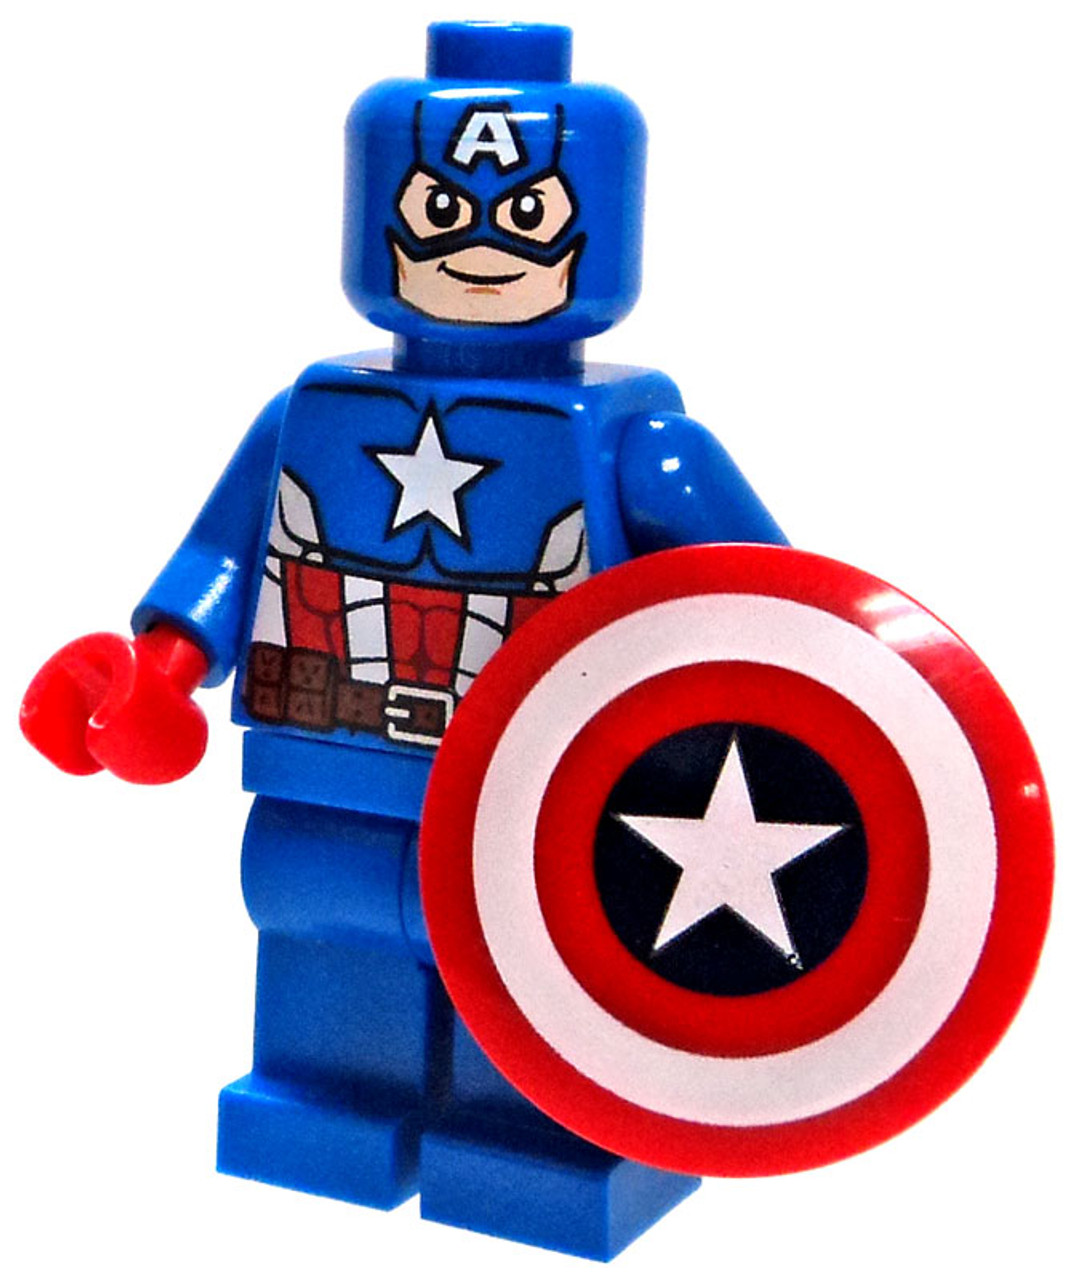 Lego marvel super heroes loose captain america minifigure version 2 loose toywiz - Lego capitaine america ...